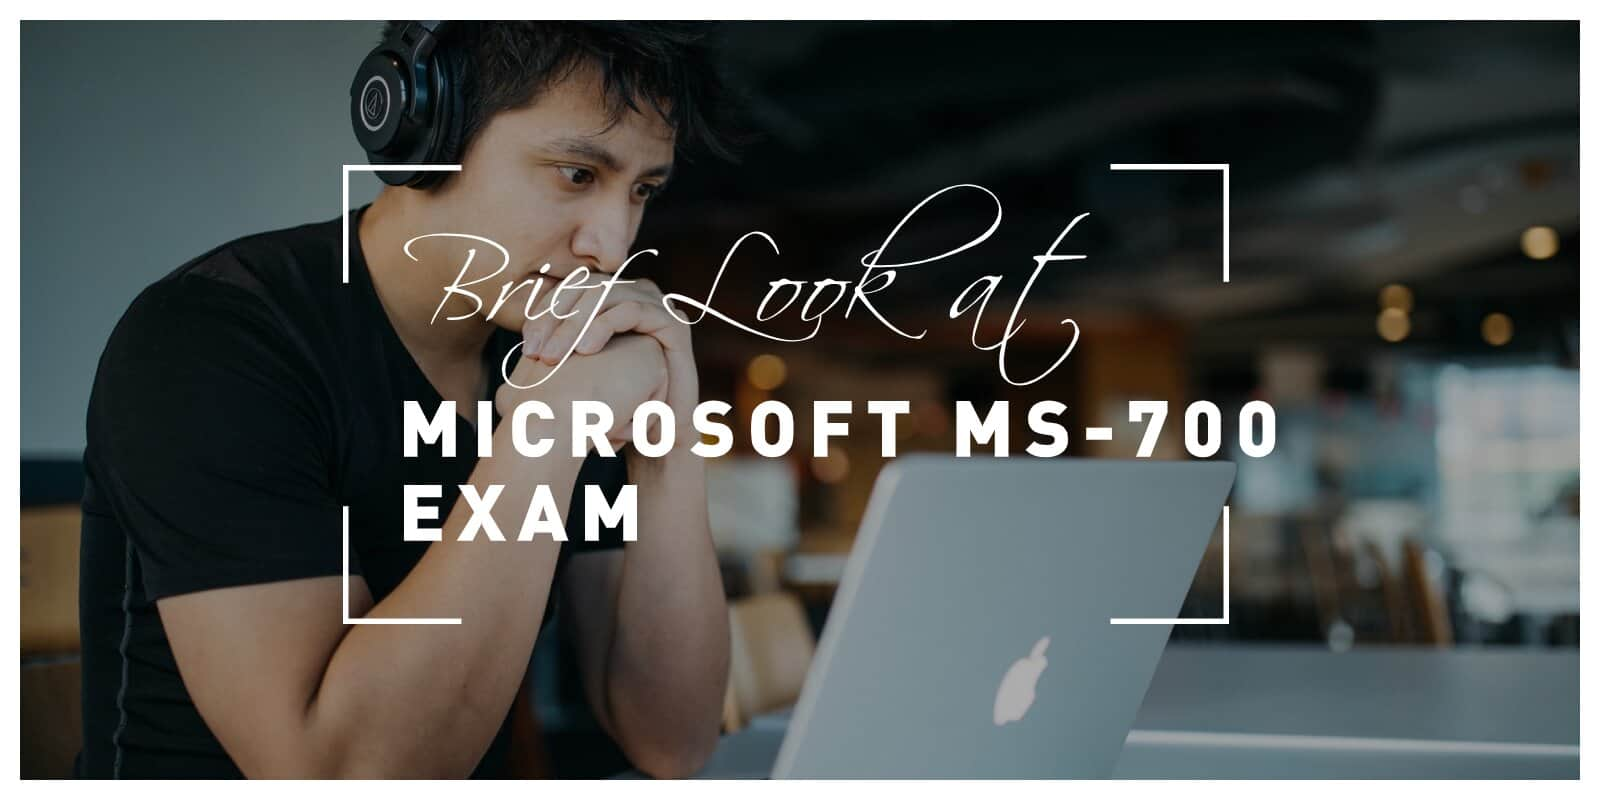 Brief Look at the Microsoft Ms-700 Exam and the Value of Training With Dumps